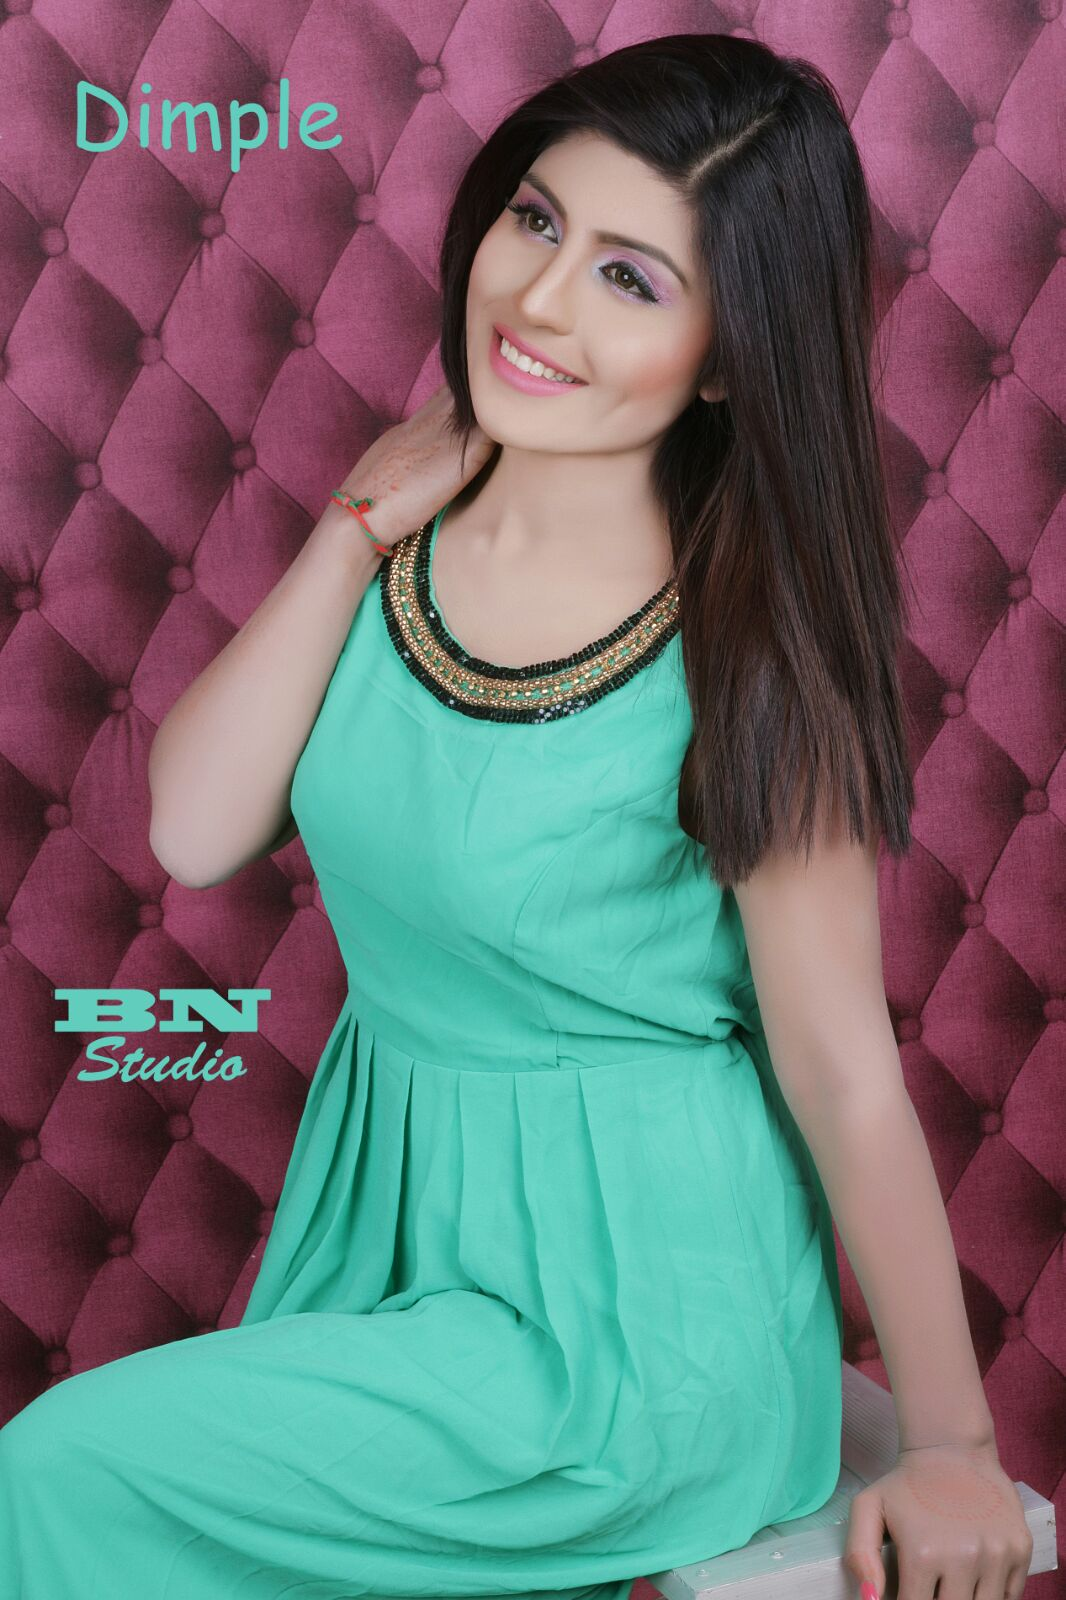 Best Girls Services In Dubai Call +971552131802 image 1